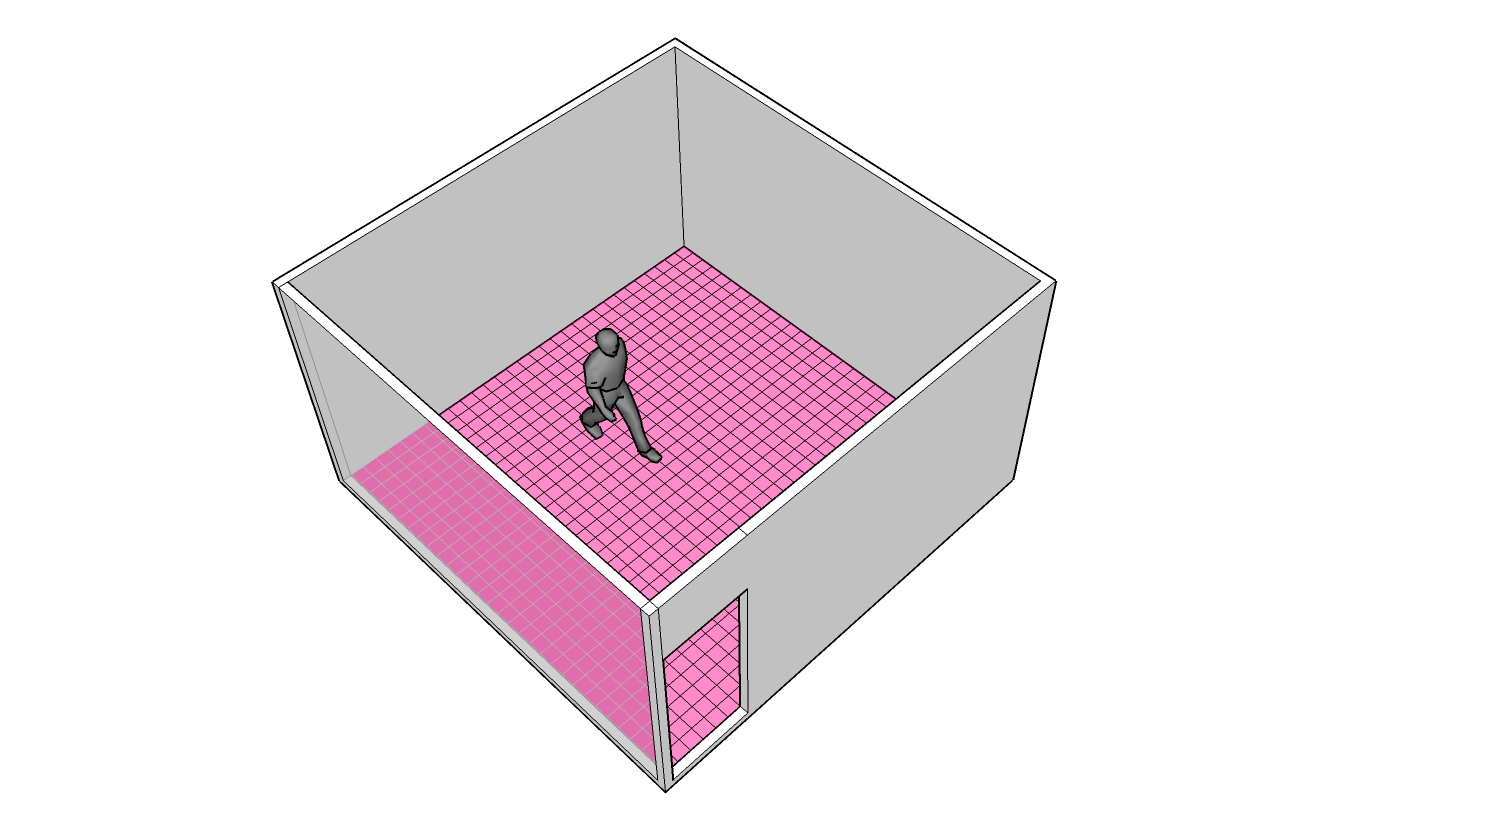 Possible use of the interface on the floor of a space